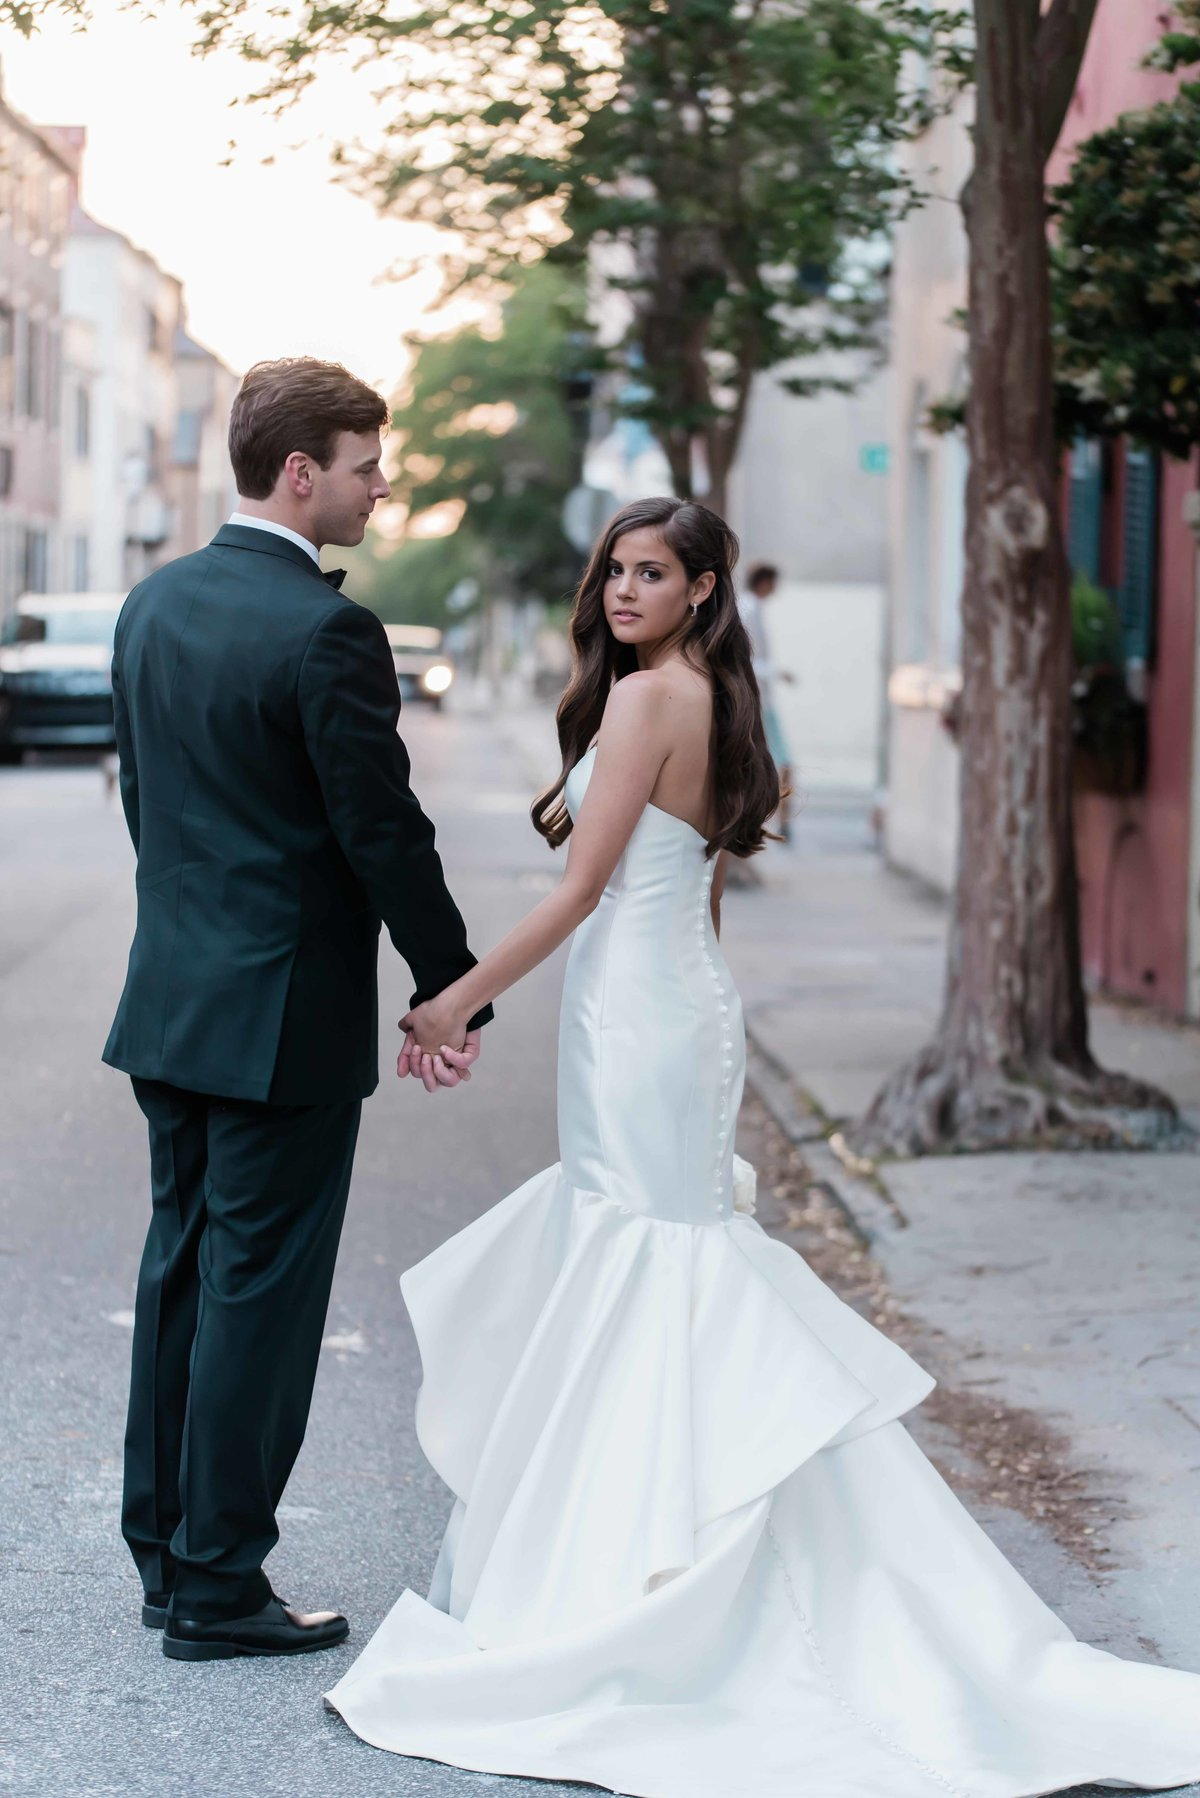 Bride and groom portraits around downtown Charleston, SC at sunset